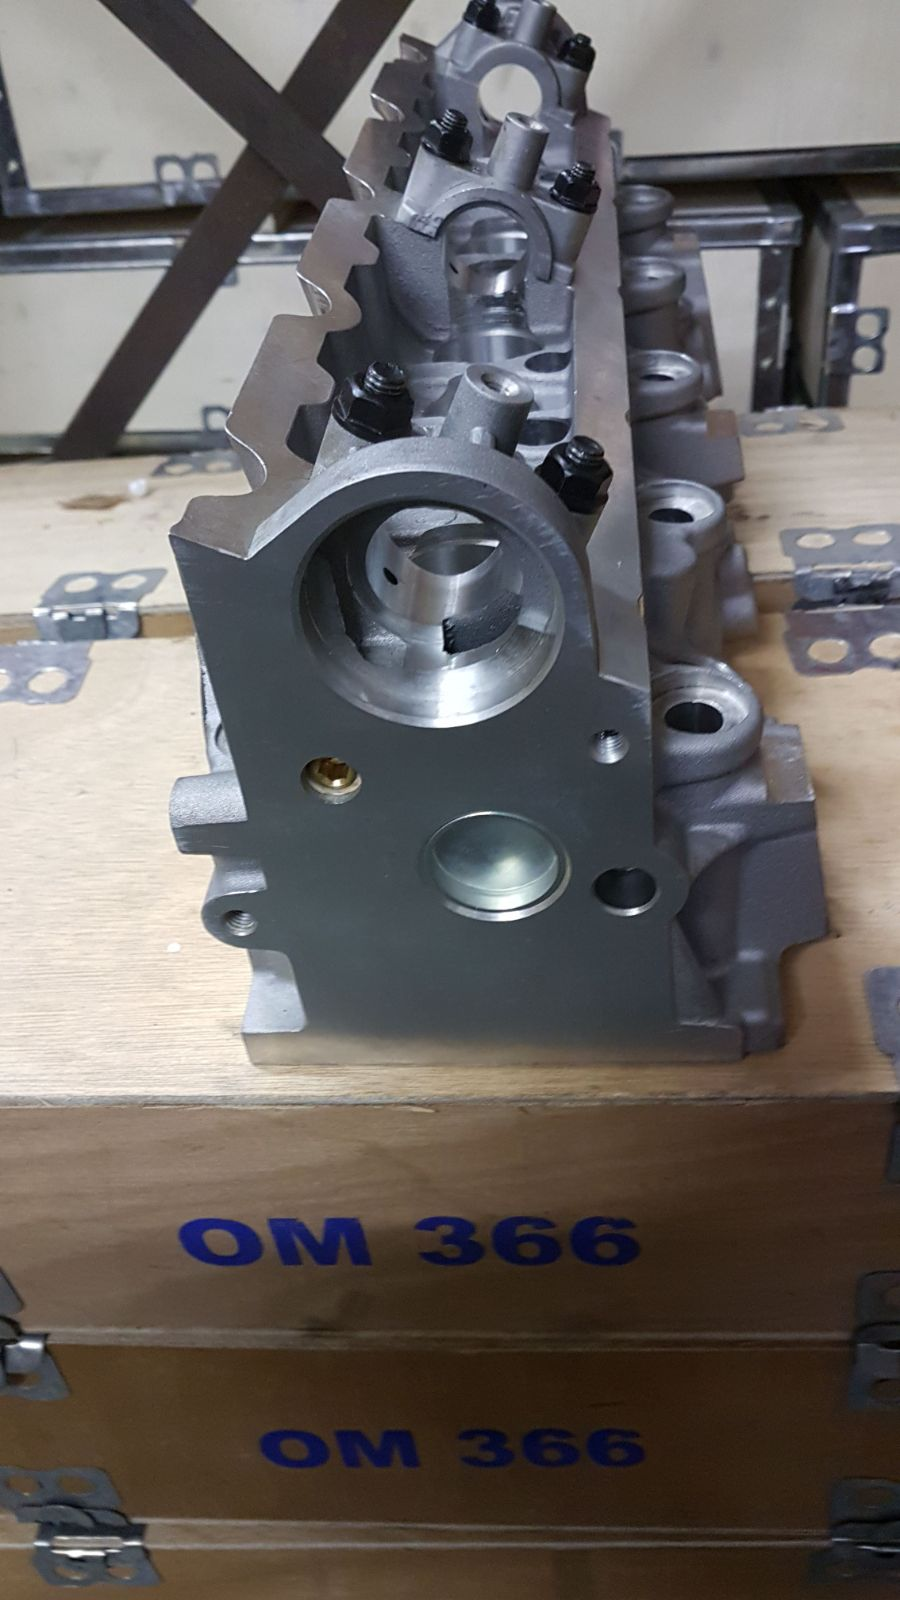 Peugeot 306 / 405 / 1.9 XUD9TE Cylinder Head for sale - new! Bare!